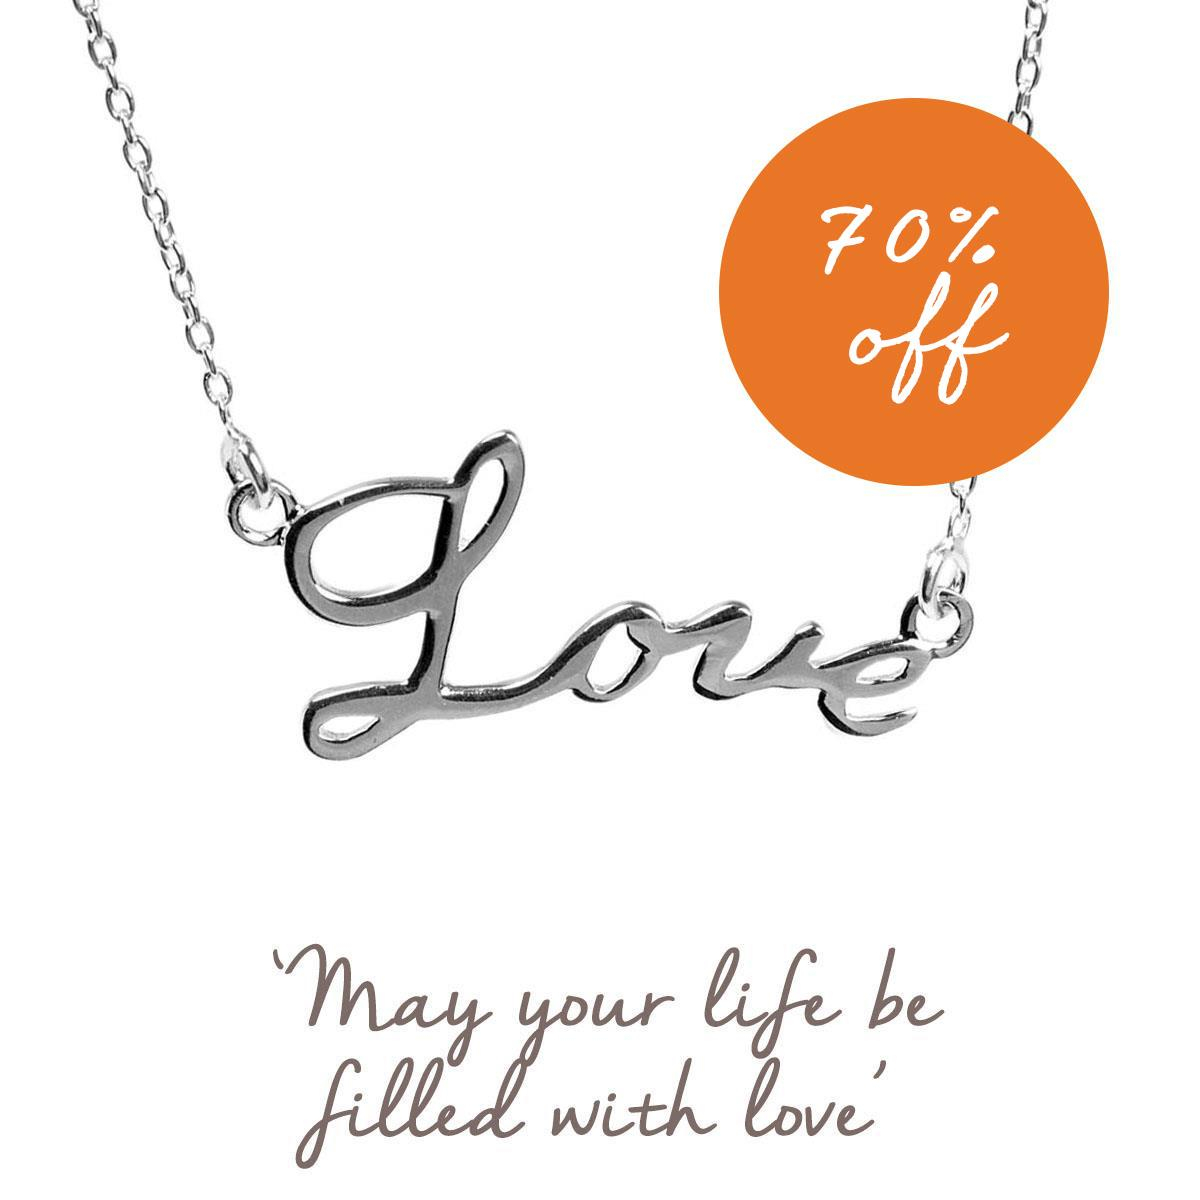 Love Script Necklace | Romantic Gifts For Her | Mantra Jewellery Intended For Latest Loved Script Necklaces (View 8 of 25)